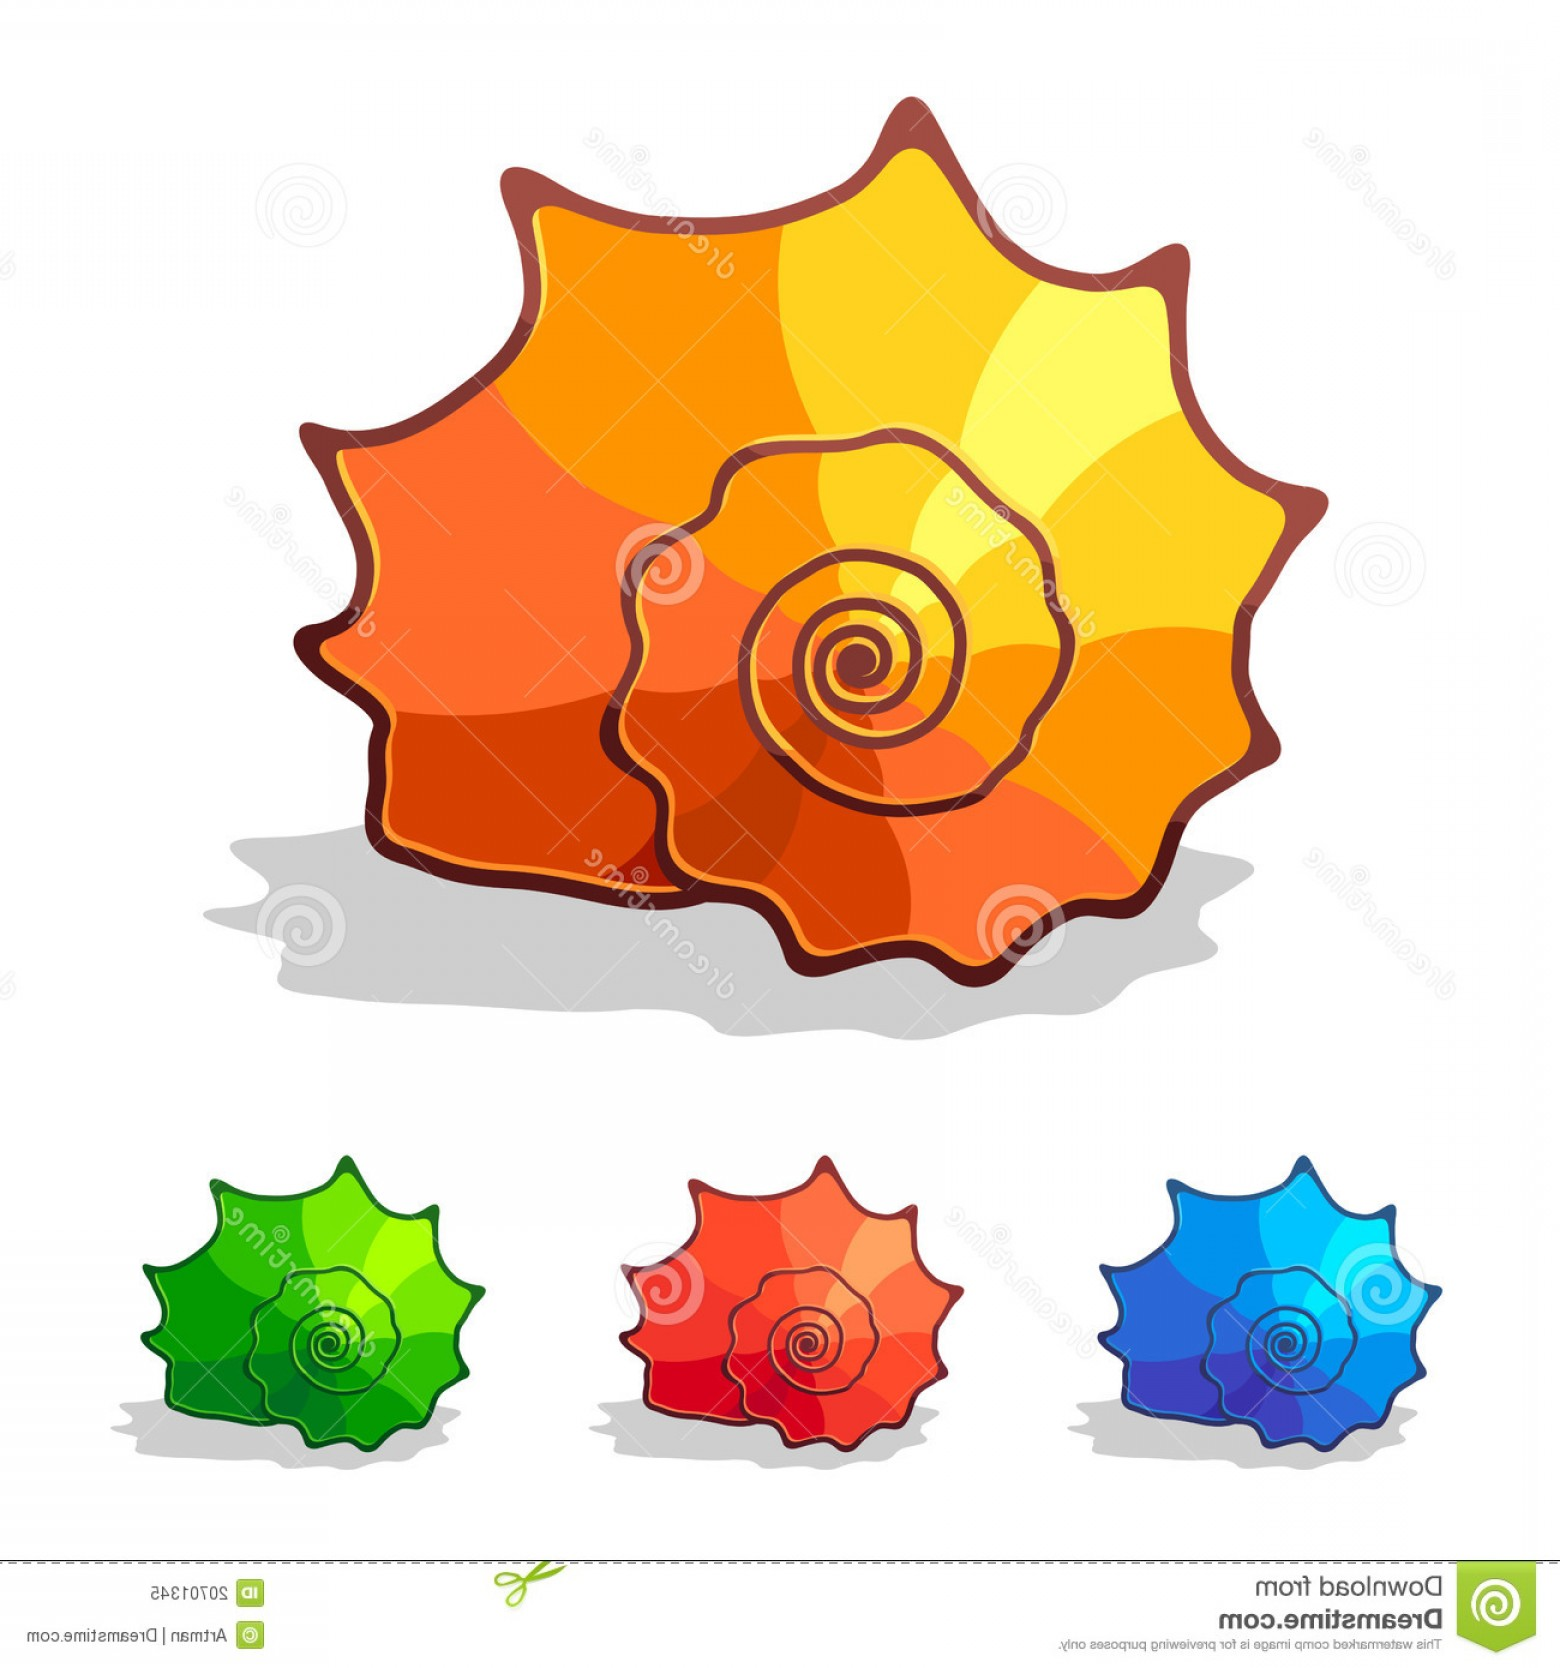 Shell Vector Icons: Royalty Free Stock Photo Sea Shell Vector Icon Image